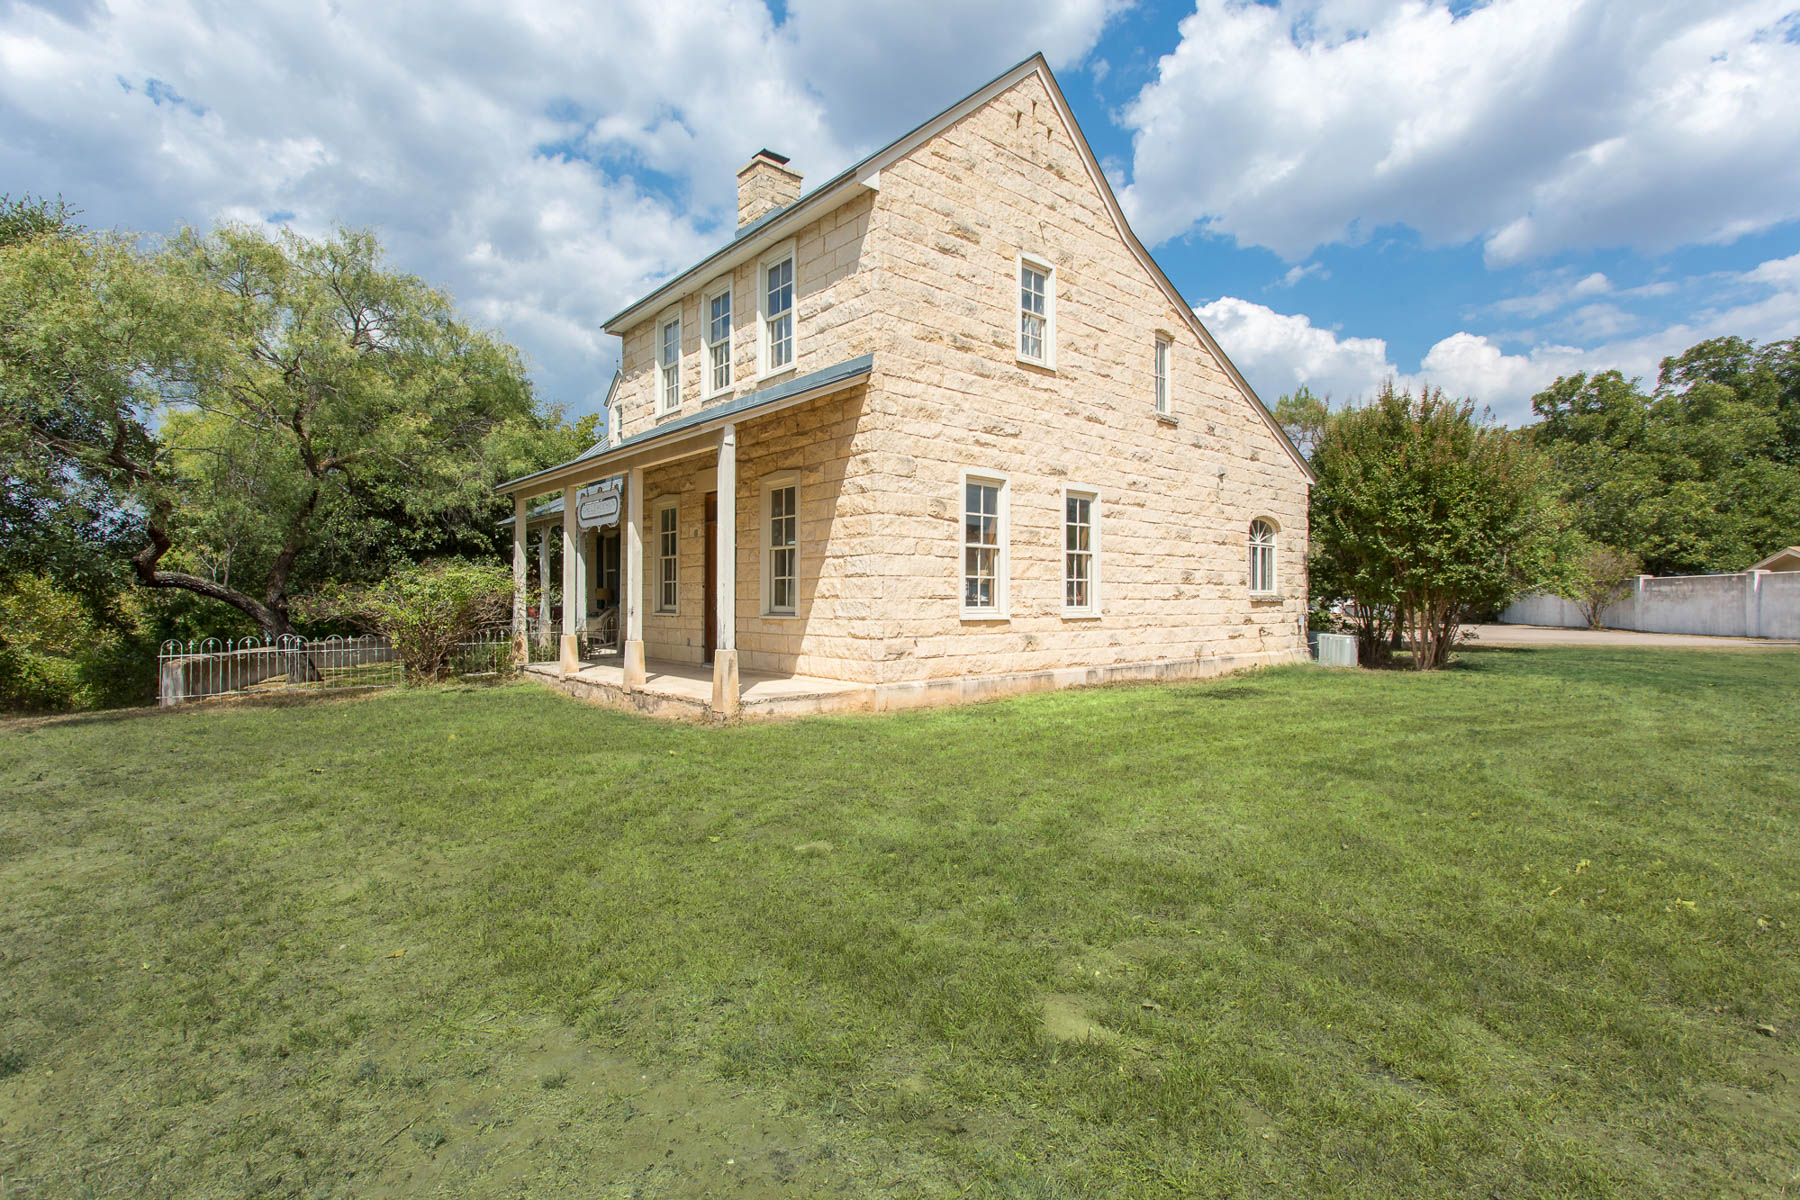 Additional photo for property listing at Texas Hill Country Style Homes in Fredericksburg 605 E Austin St Fredericksburg, Texas 78624 Estados Unidos